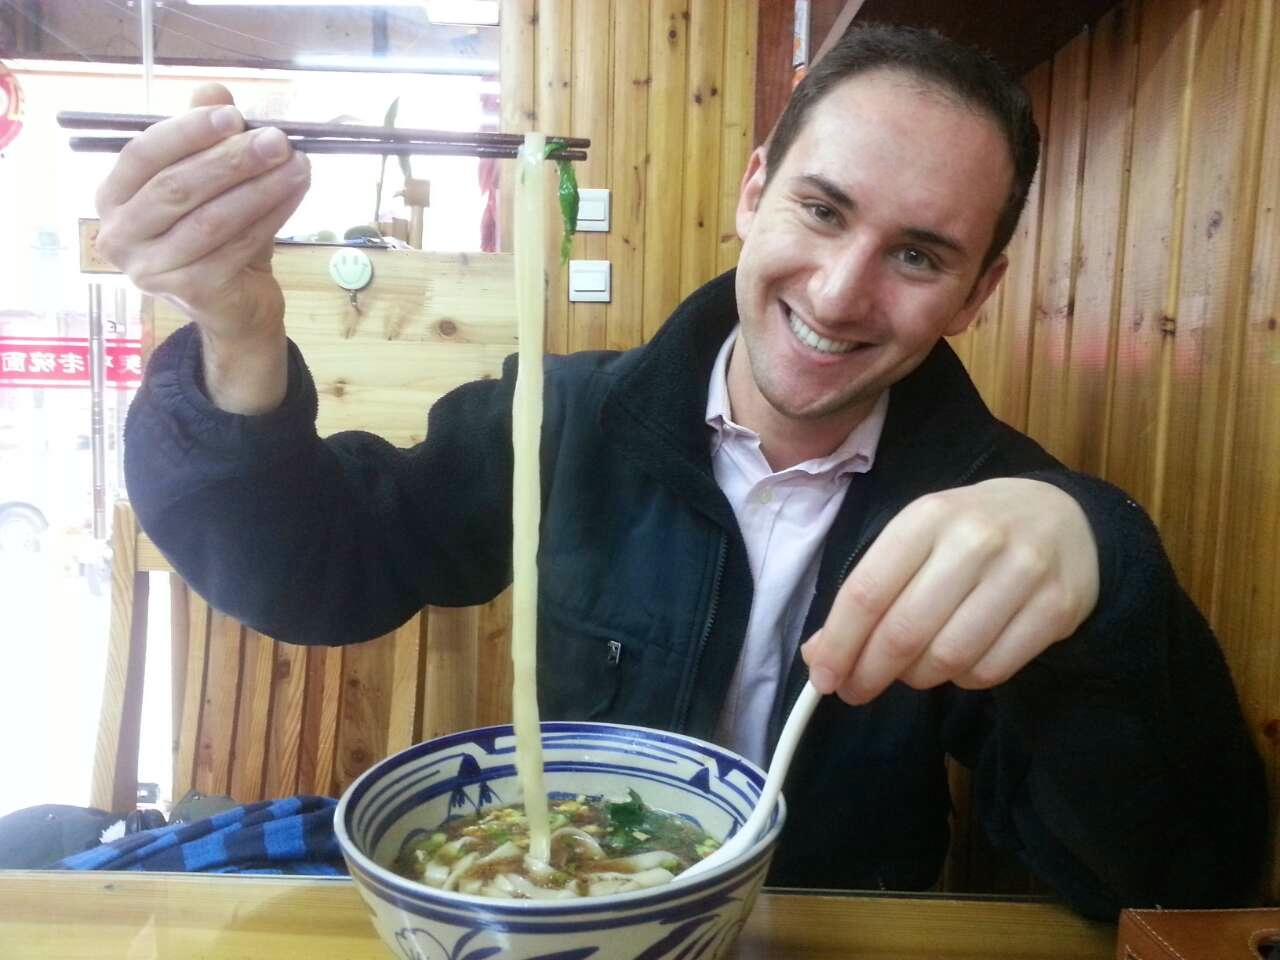 prospective students macaulay honors college macaulay student noodles in restaurant during study abroad trip to